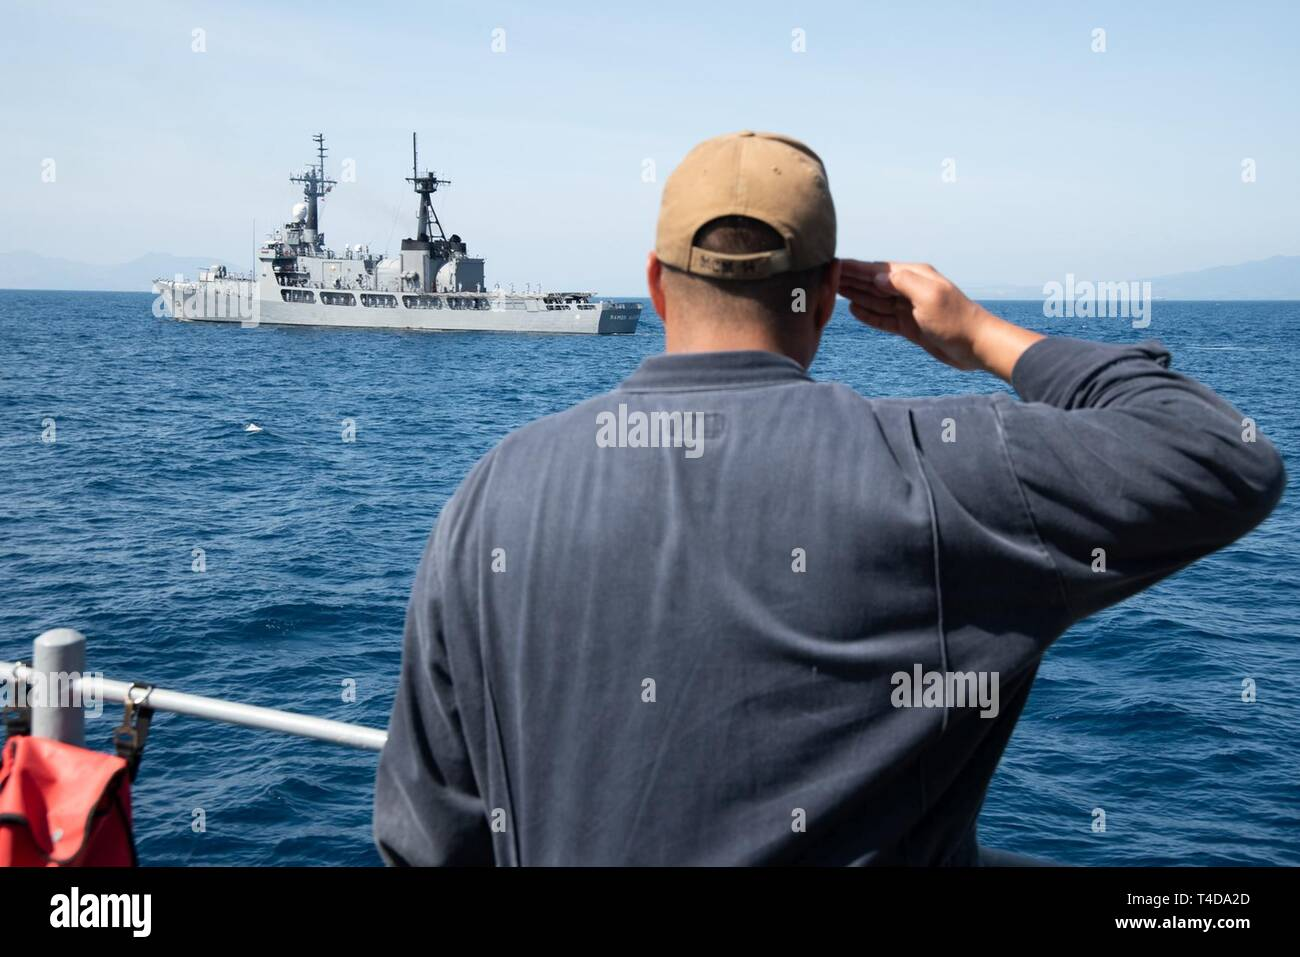 SOUTH CHINA SEA (March 21, 2019) Machinist Mate 1st Class Blaze Featheran, from Kaneohe, Hawaii, renders honors to Philippine Navy vessel BRP Ramon Alcaraz (FF 16) after completing a maritime cooperative activity aboard the Avenger class mine countermeasures ship USS Chief (MCM 14). Chief, part of Mine Countermeasures Squadron 7, is operating in the Indo-Pacific region to enhance interoperability with partners and serve as a ready-response platform for contingency operations. - Stock Image